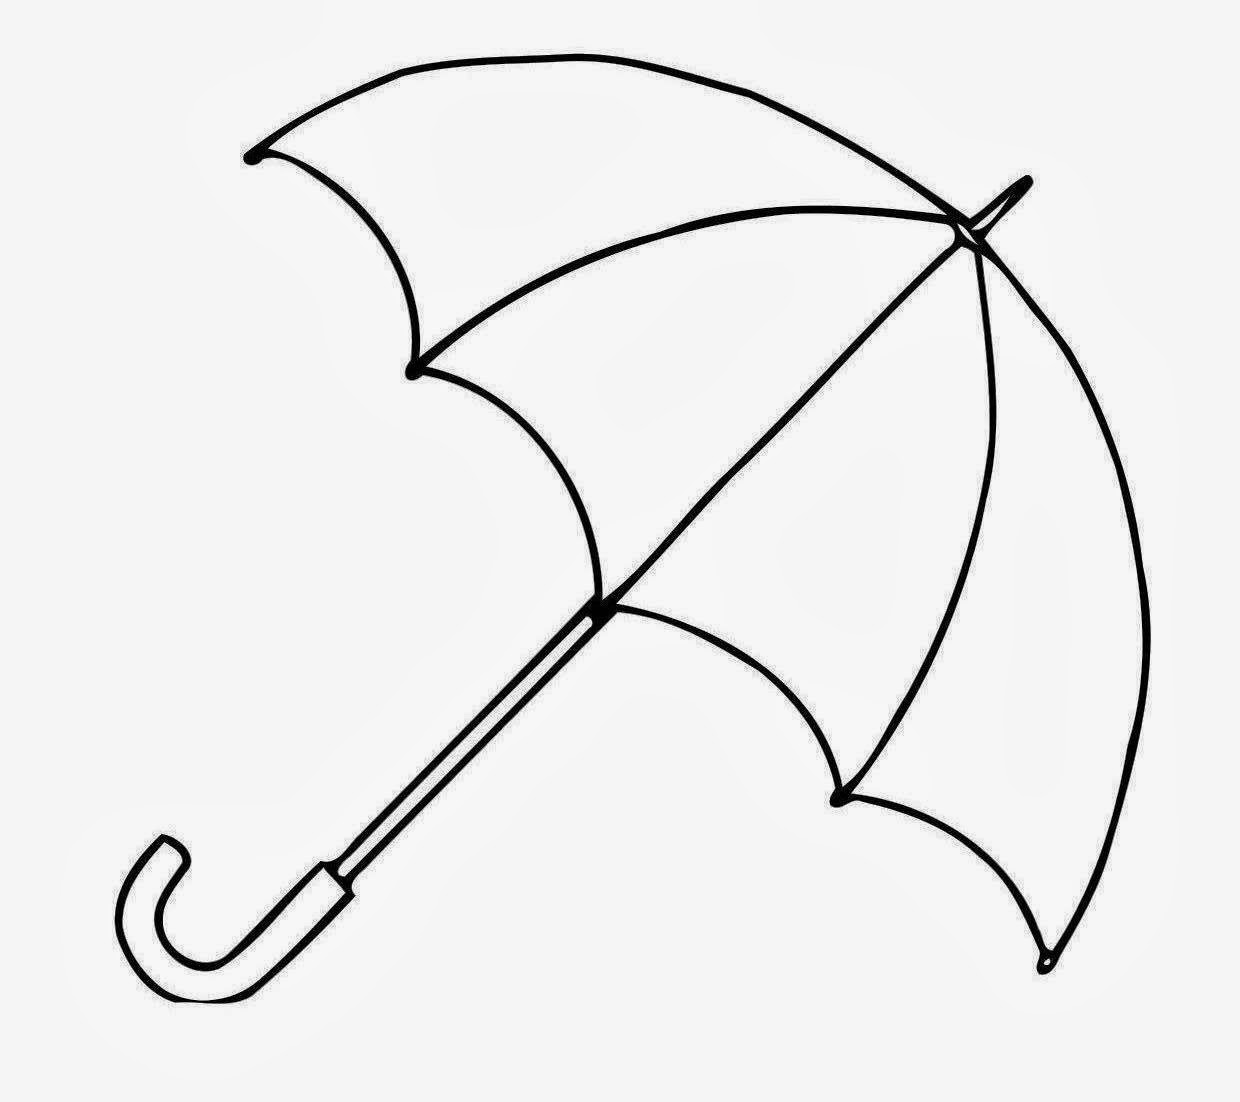 Umbrella Images on WallpaperGet.com.